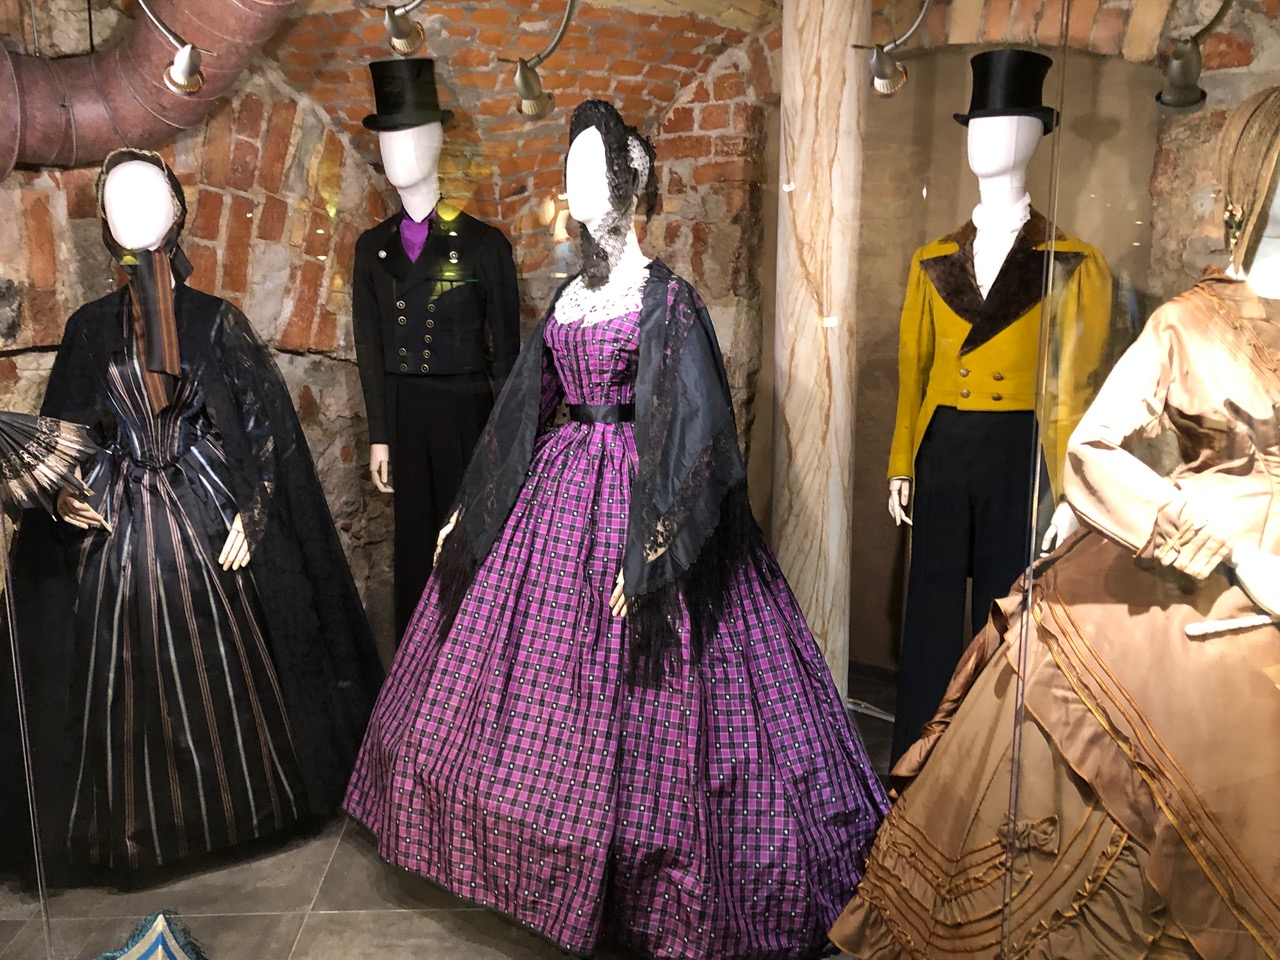 Lady in the Crinoline: the most extreme fashion of the Victorian era at the Riga Fashion Museum